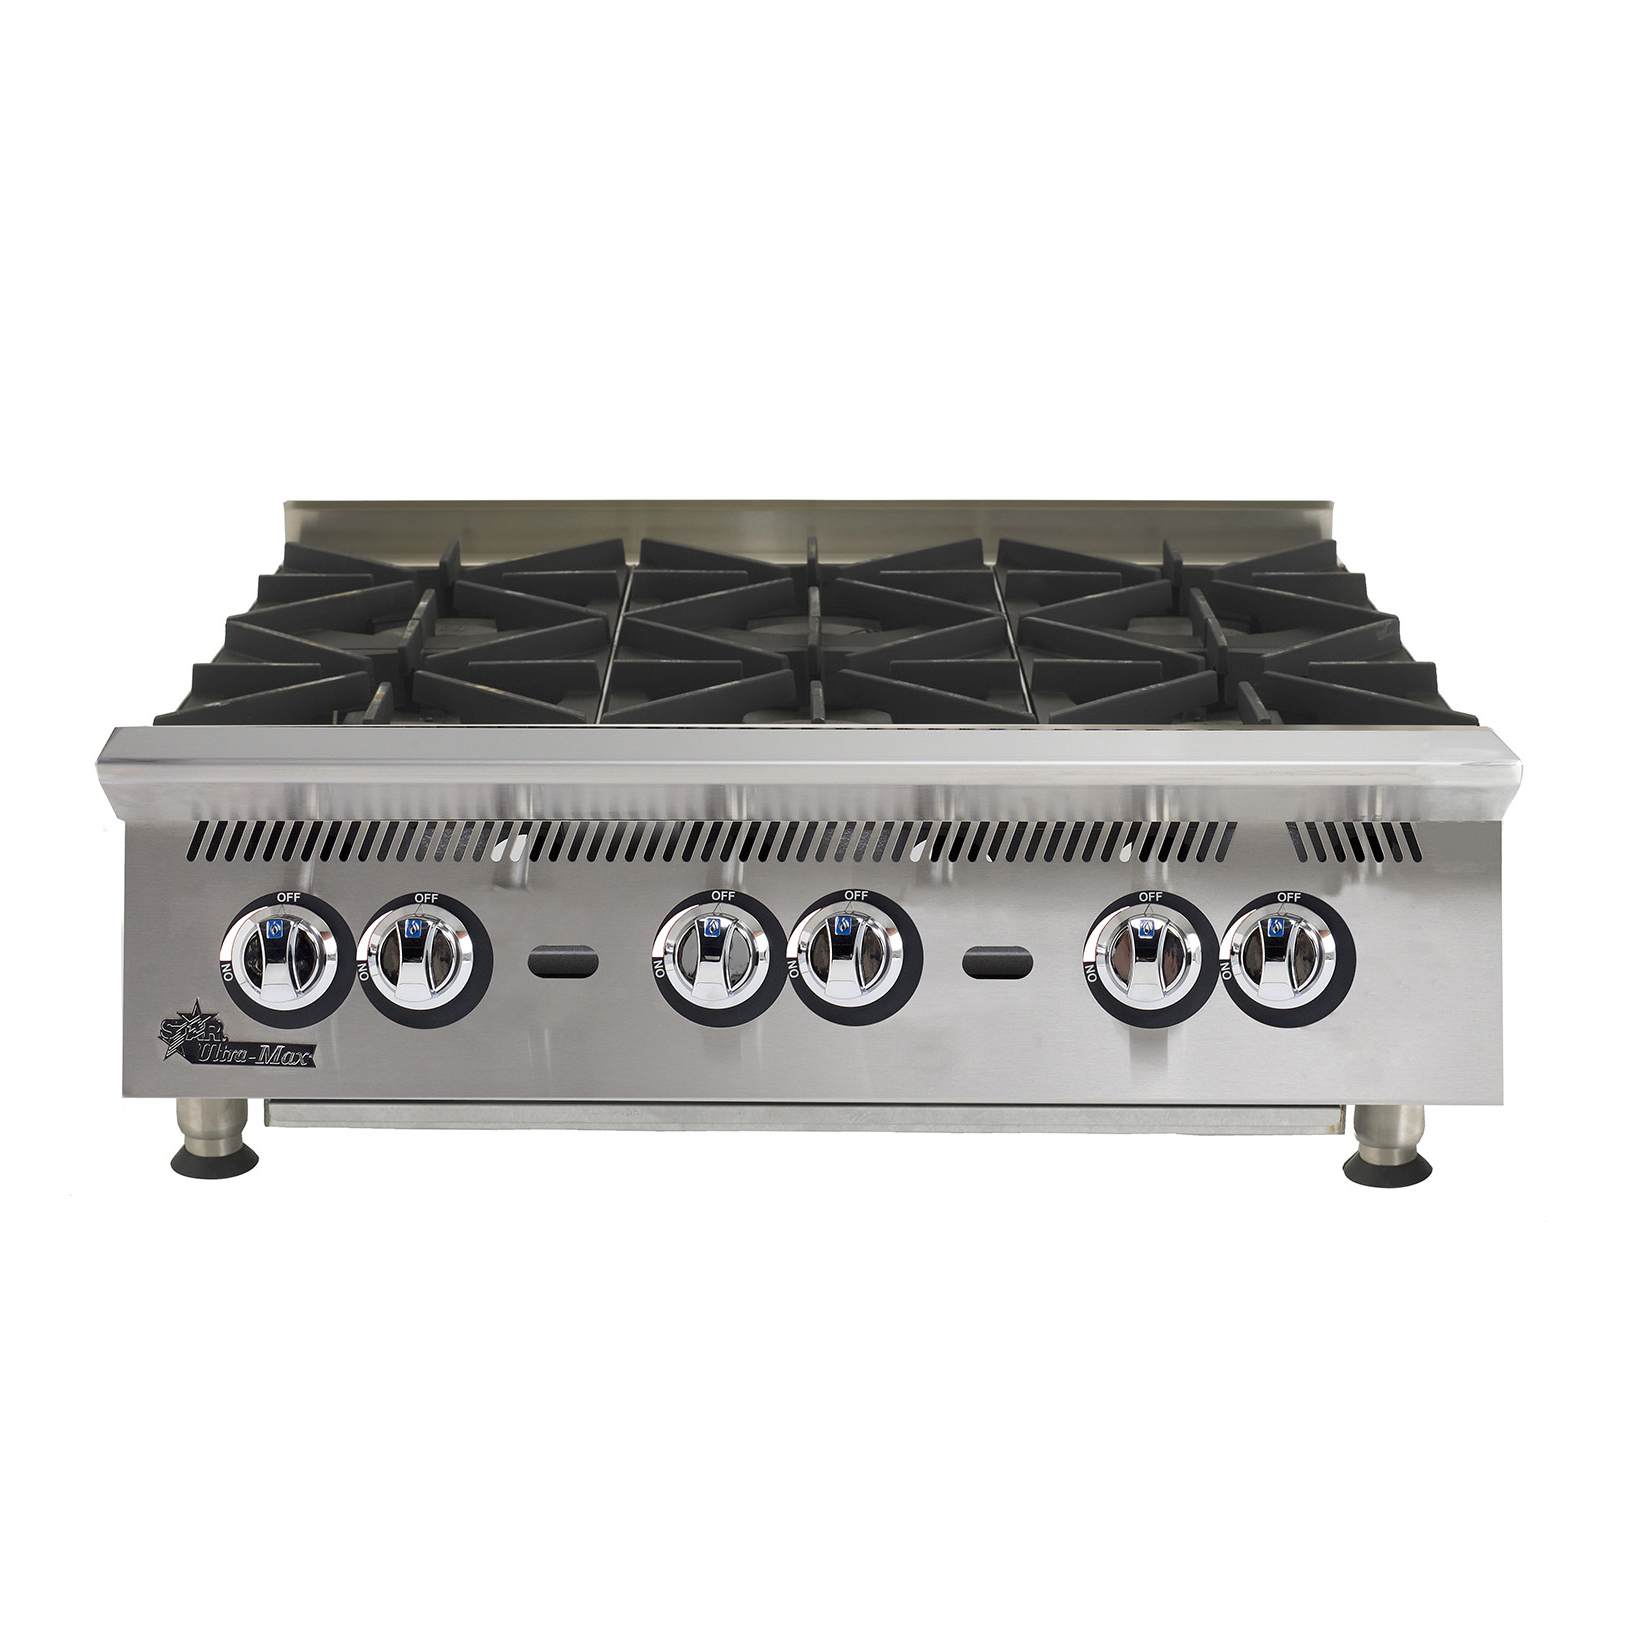 Star 806HA hotplate, countertop, gas